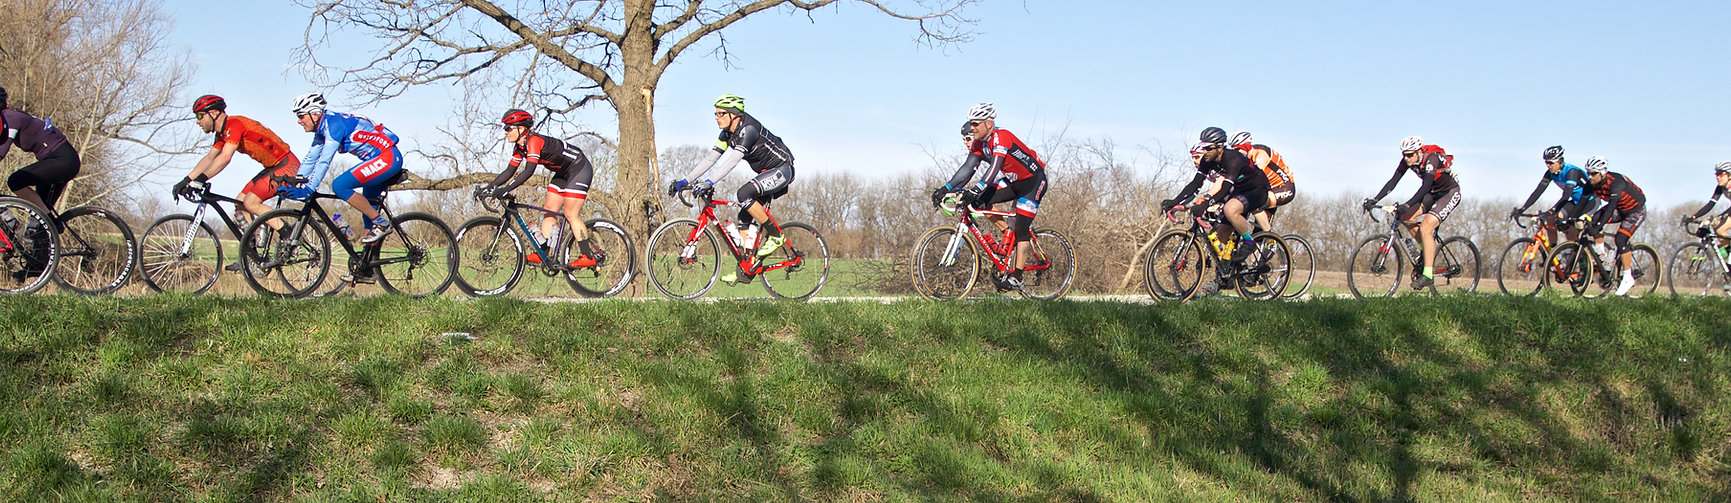 spring classic, midwest, cycling, gravel race, gravel grinder, USAC, road bike race, 100K race, Morris Illinois